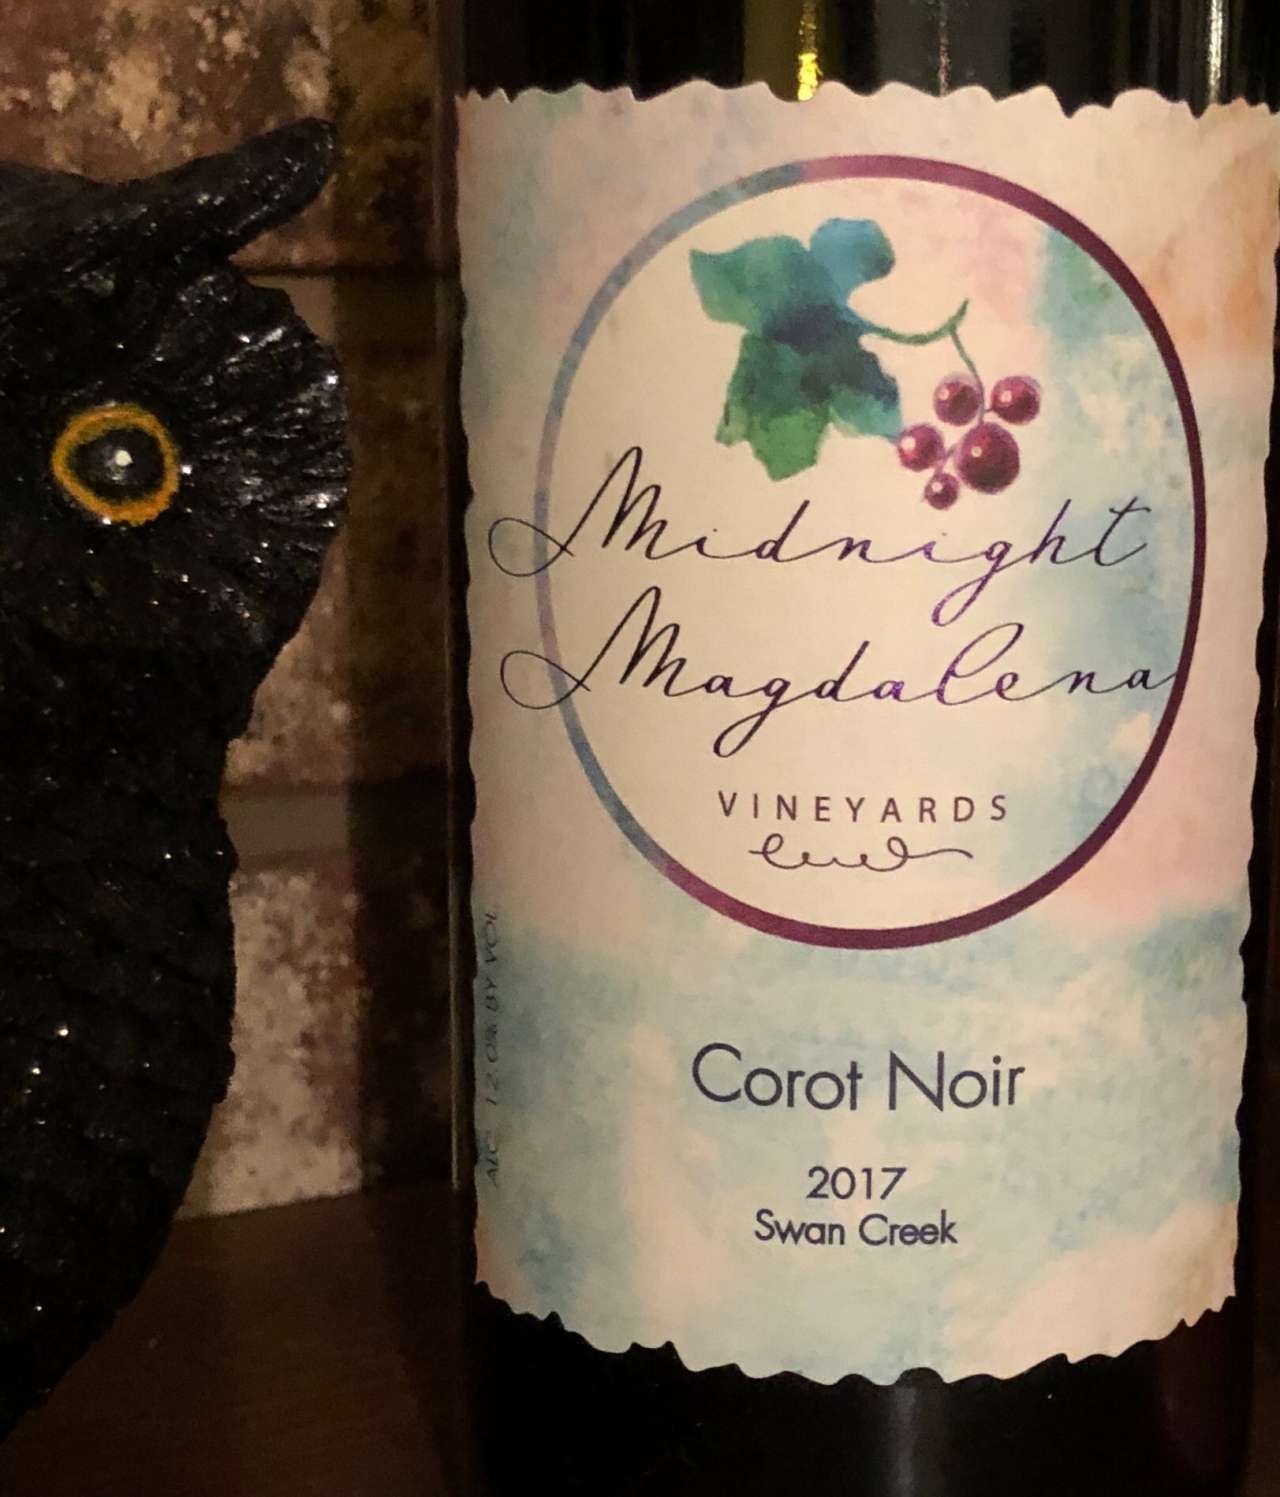 Corot Noir – Midnight Magdalena Vineyards